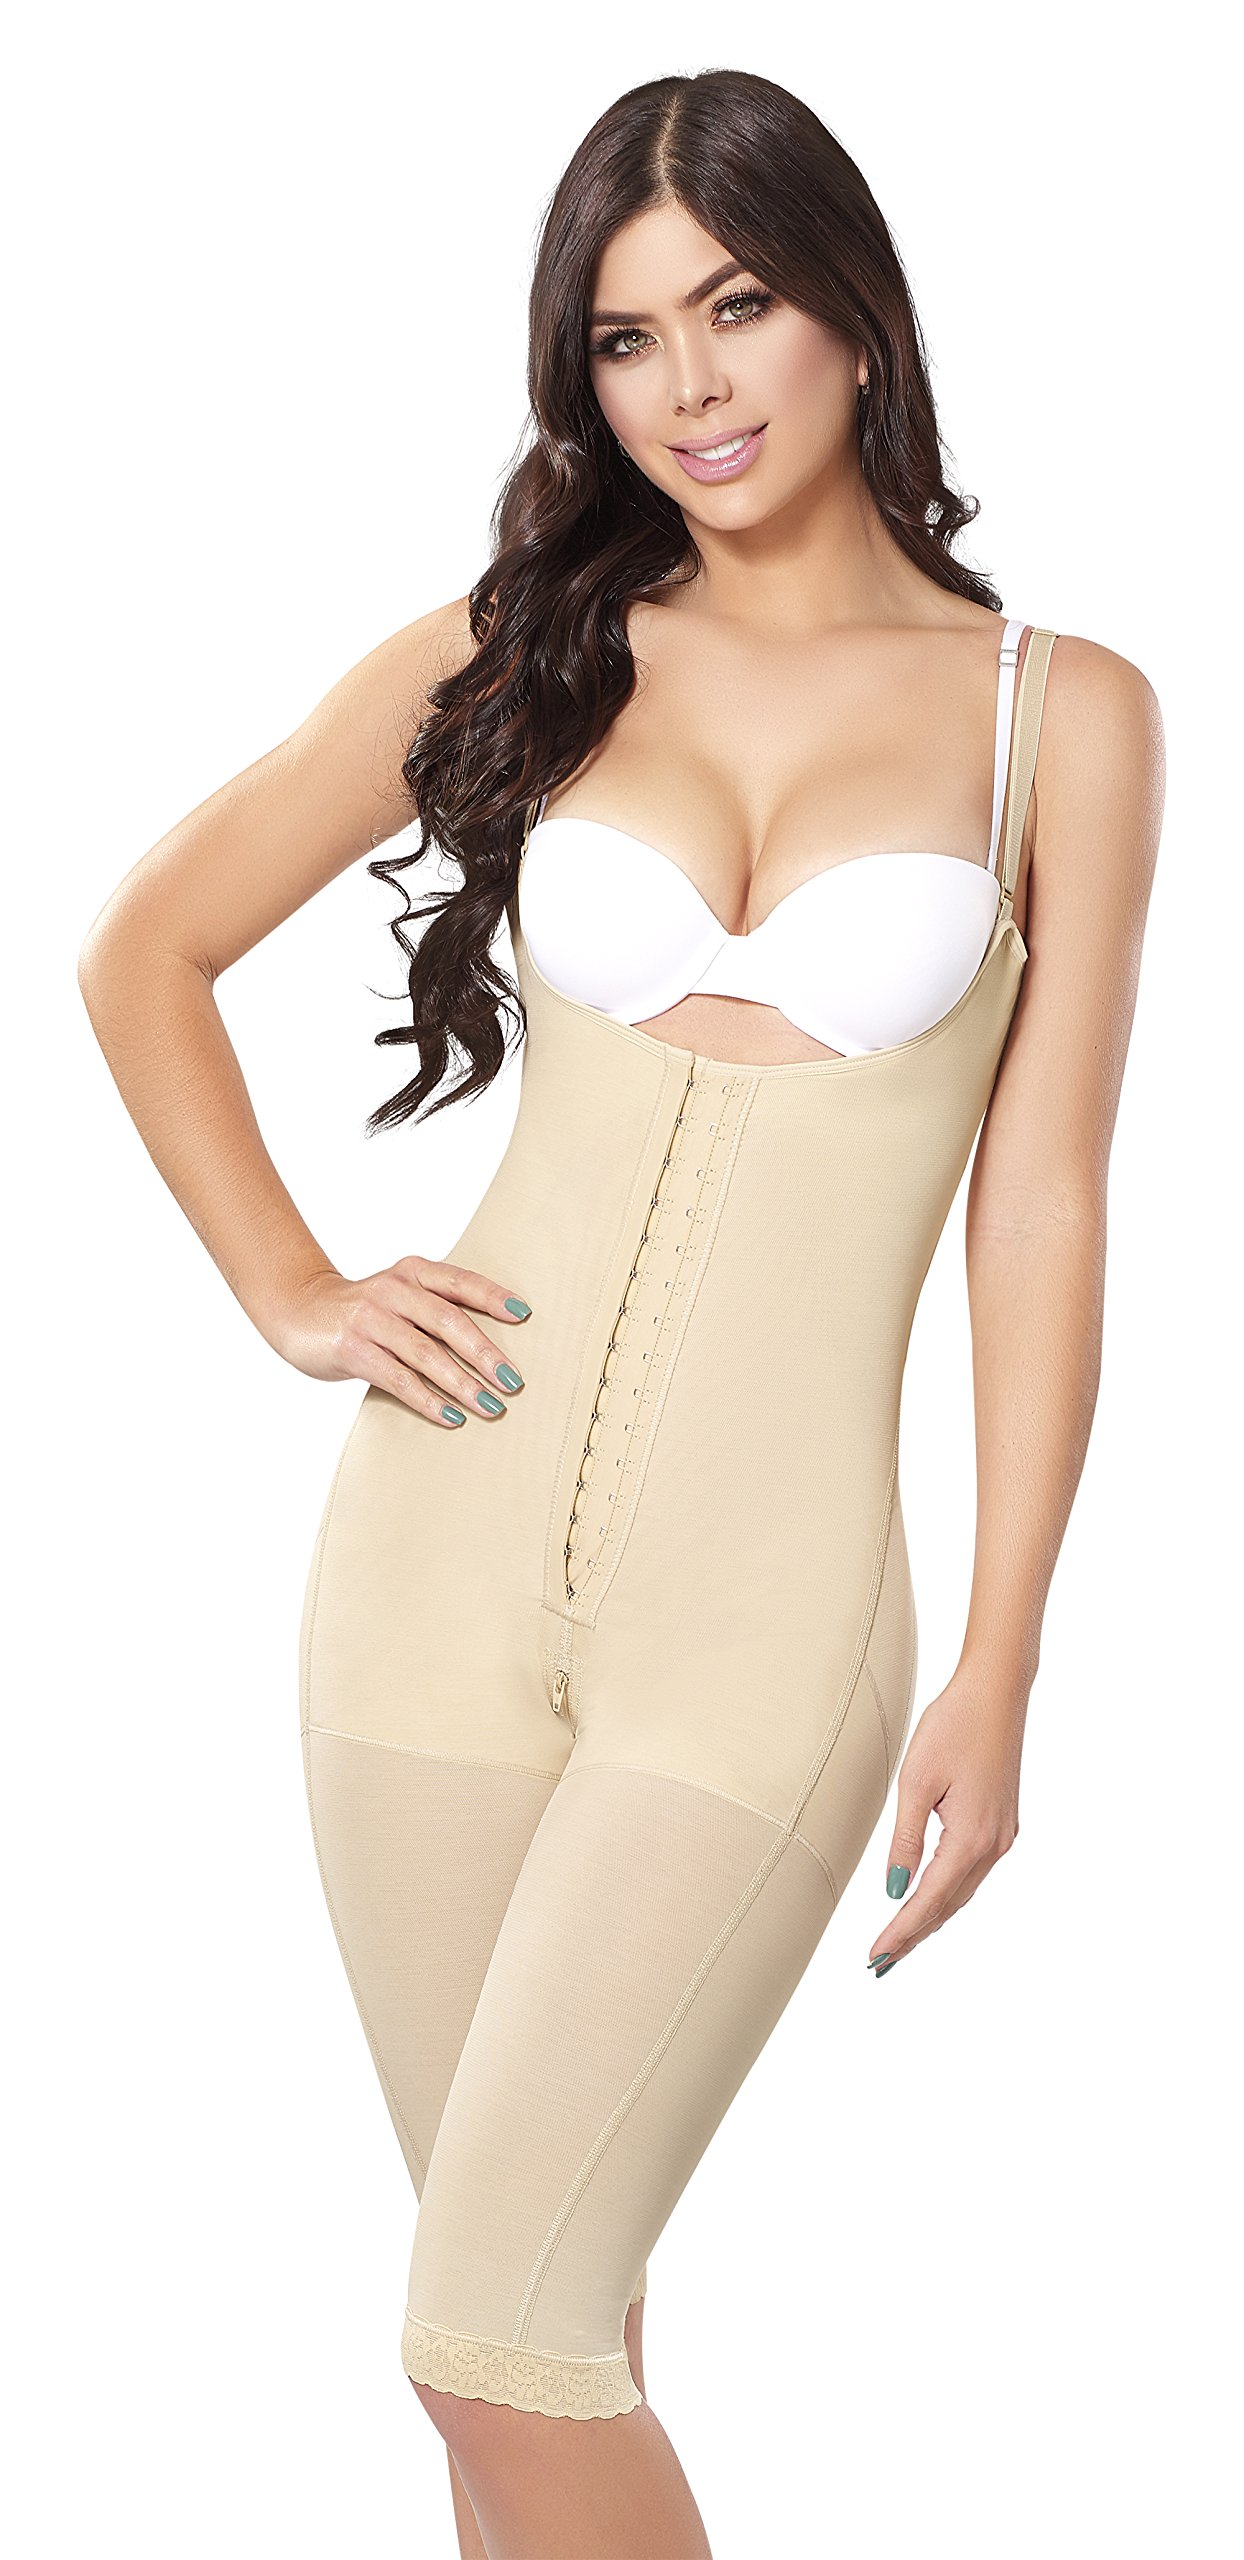 728bbe67979 Shape Concept Fajas Colombianas Reductoras y Moldeadoras High Compression  Garments After Liposuction Full Bodysuit SCM0068 (Beige